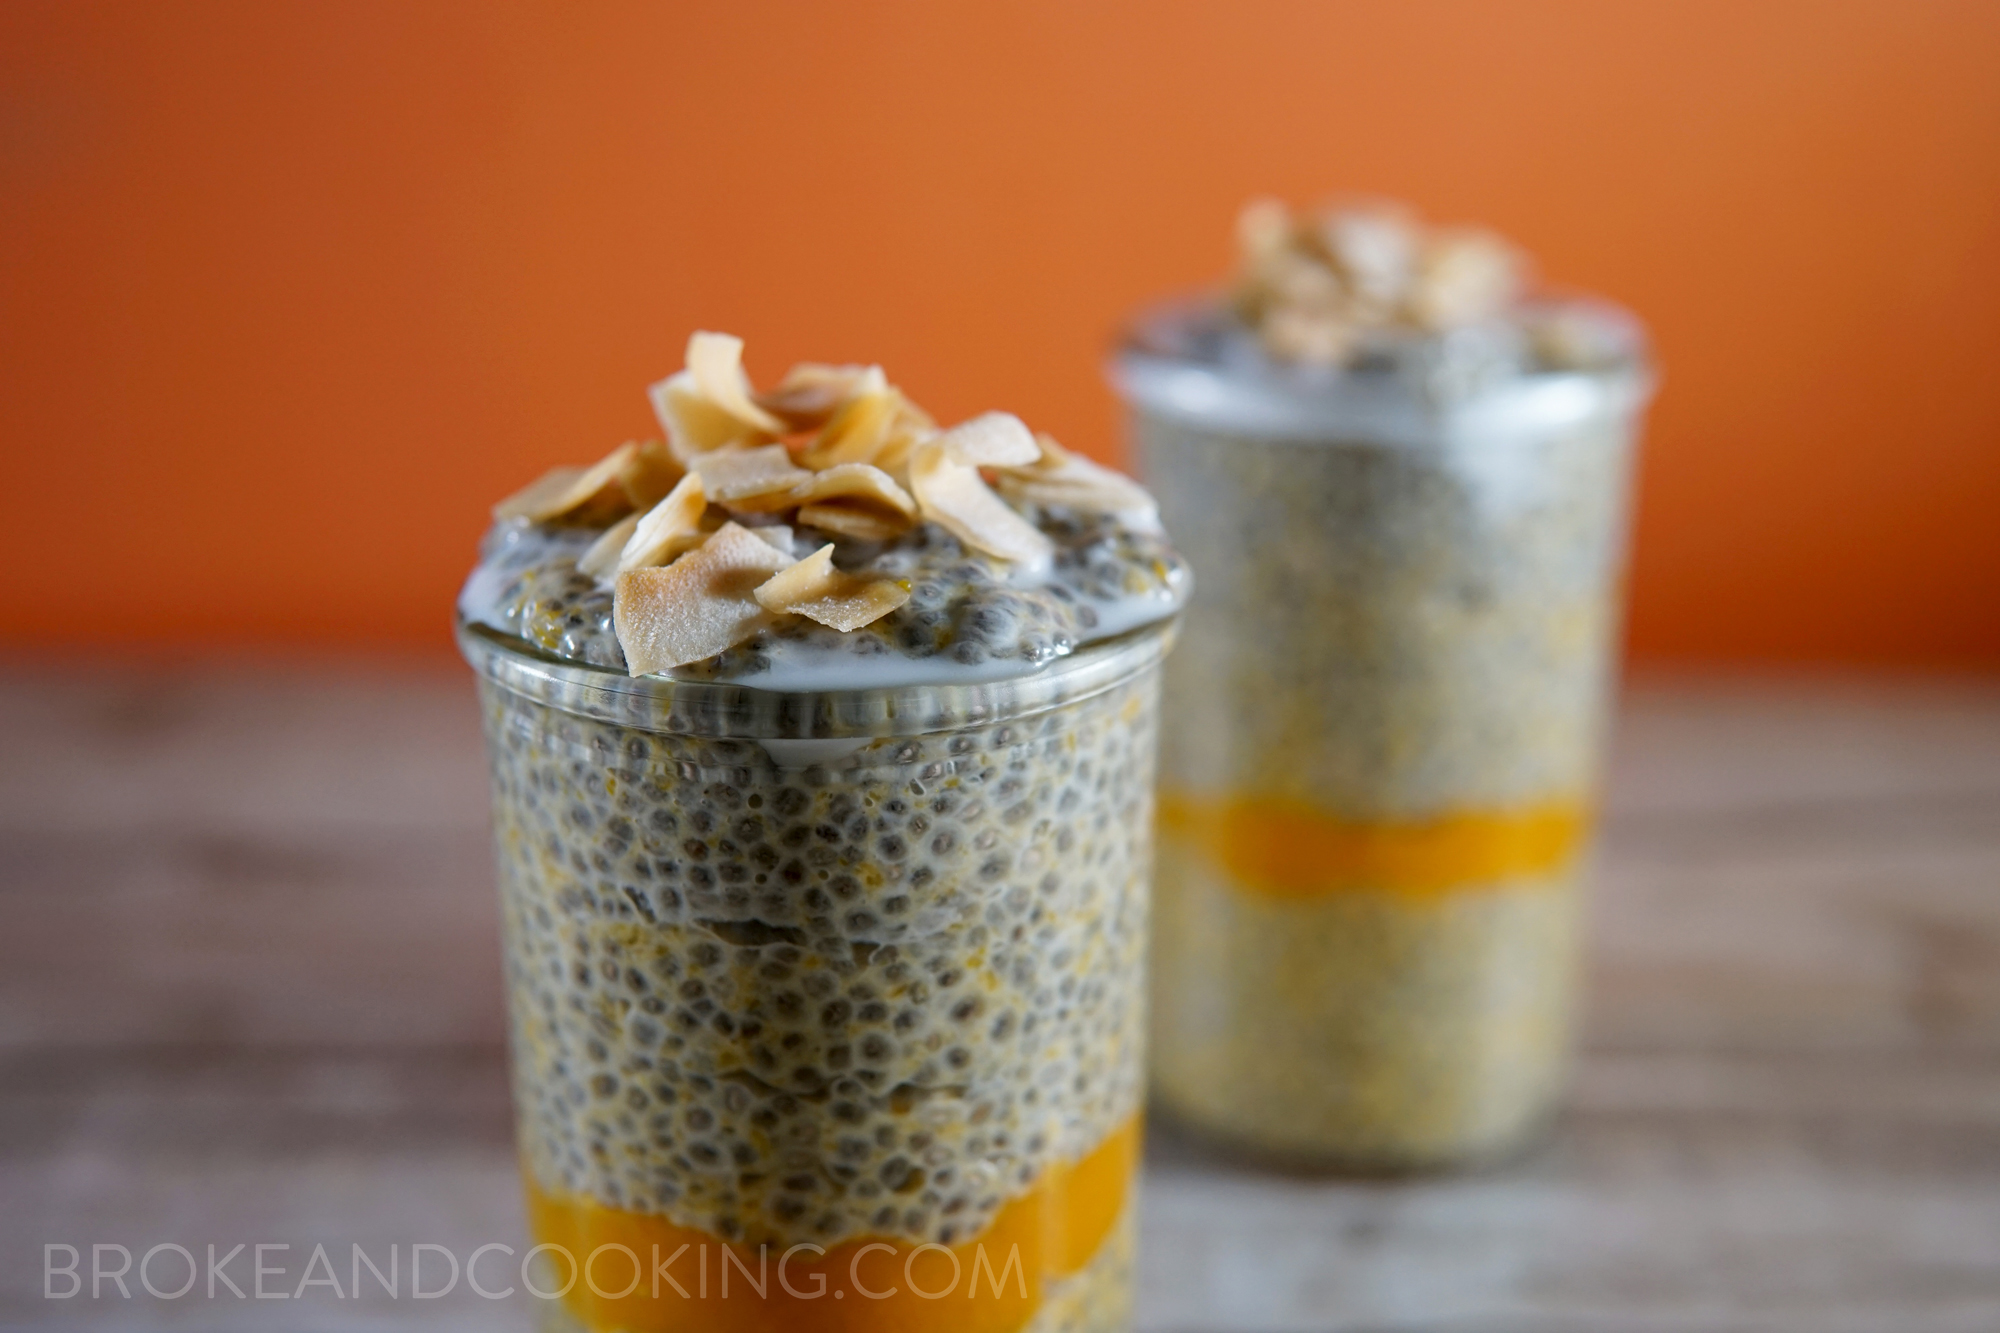 Pumpkin Pie Chia Pudding Recipe by Broke and Cooking